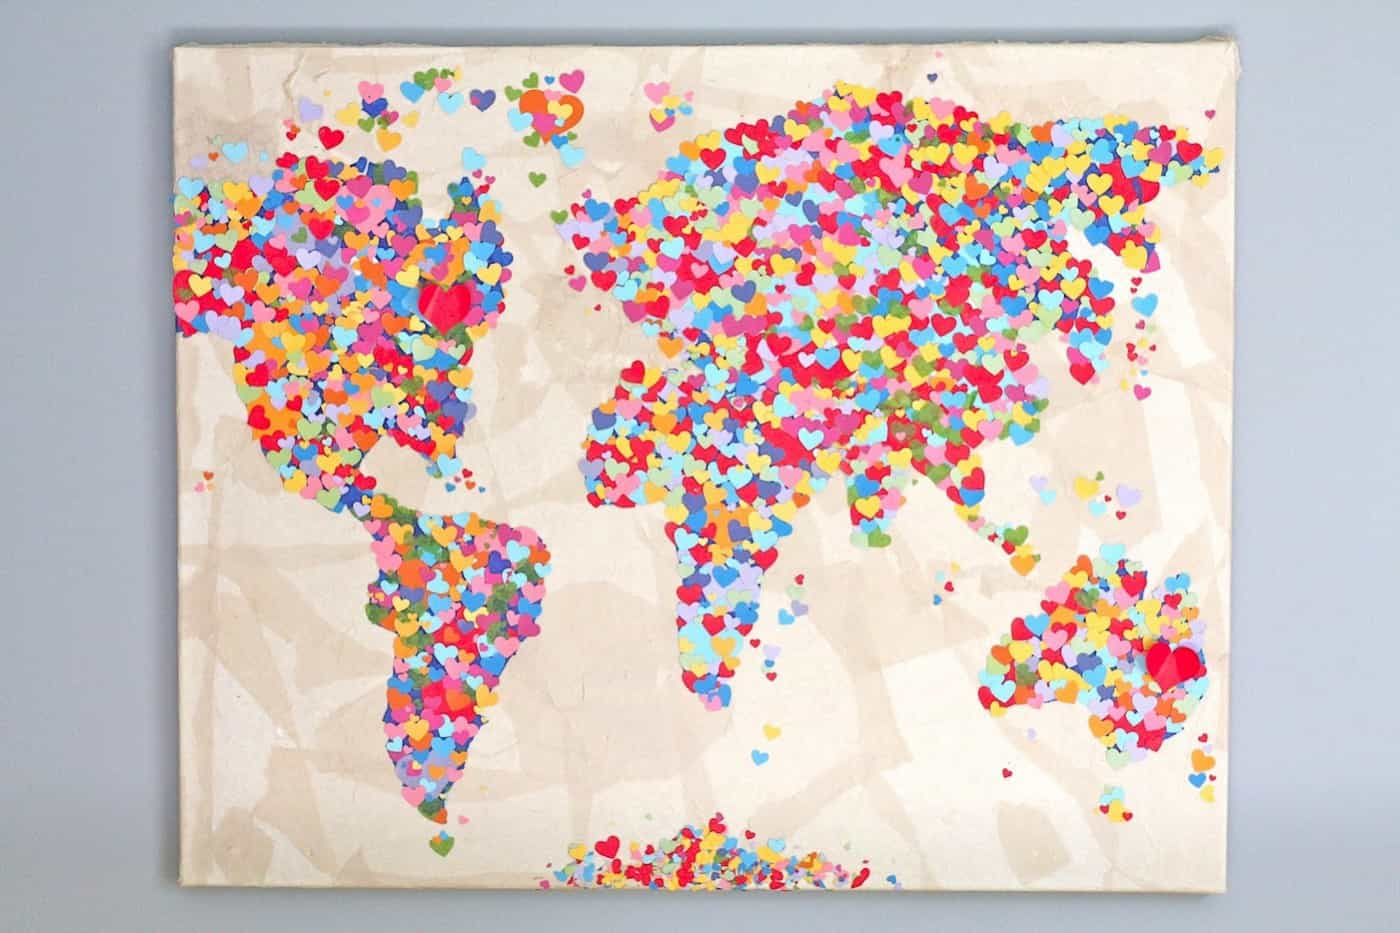 For Those Who Love The World A Heart Map Mod Podge Rocks